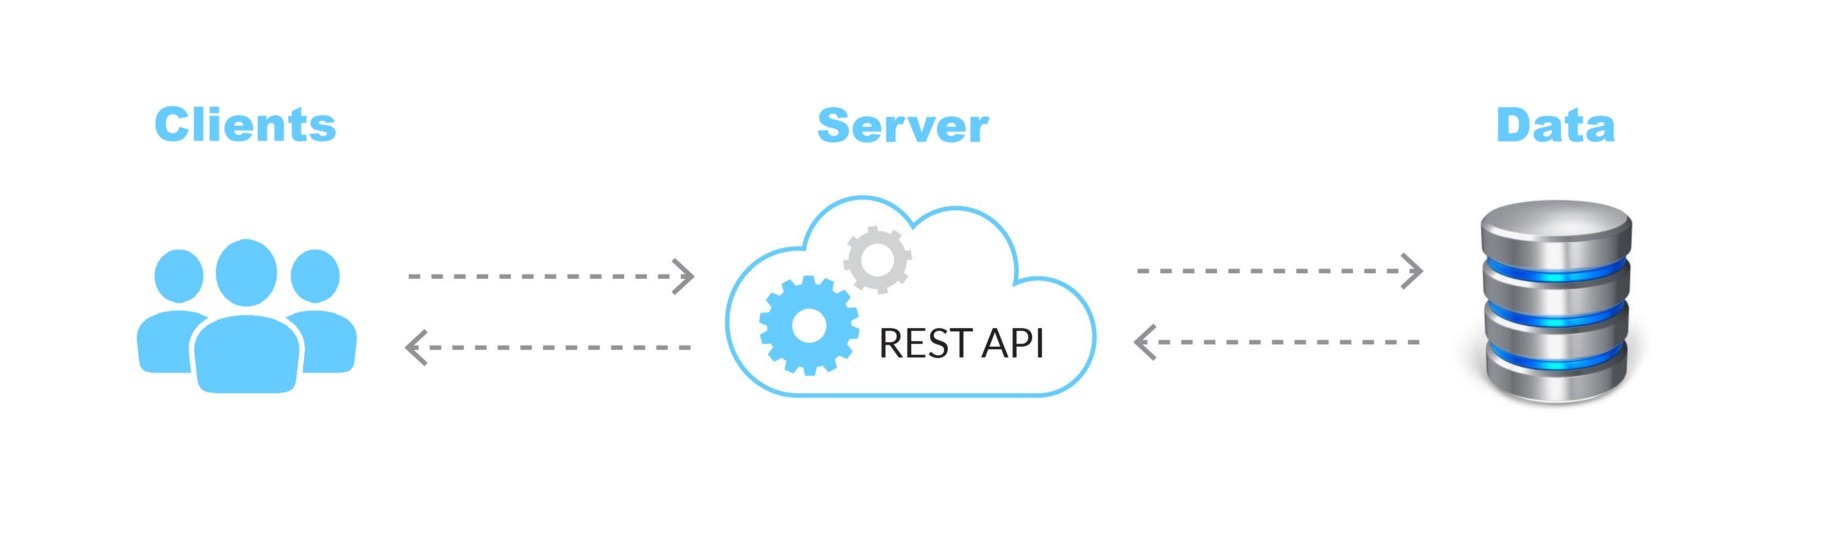 REST API — Overview and Introduction - Prerna Kaushik - Medium